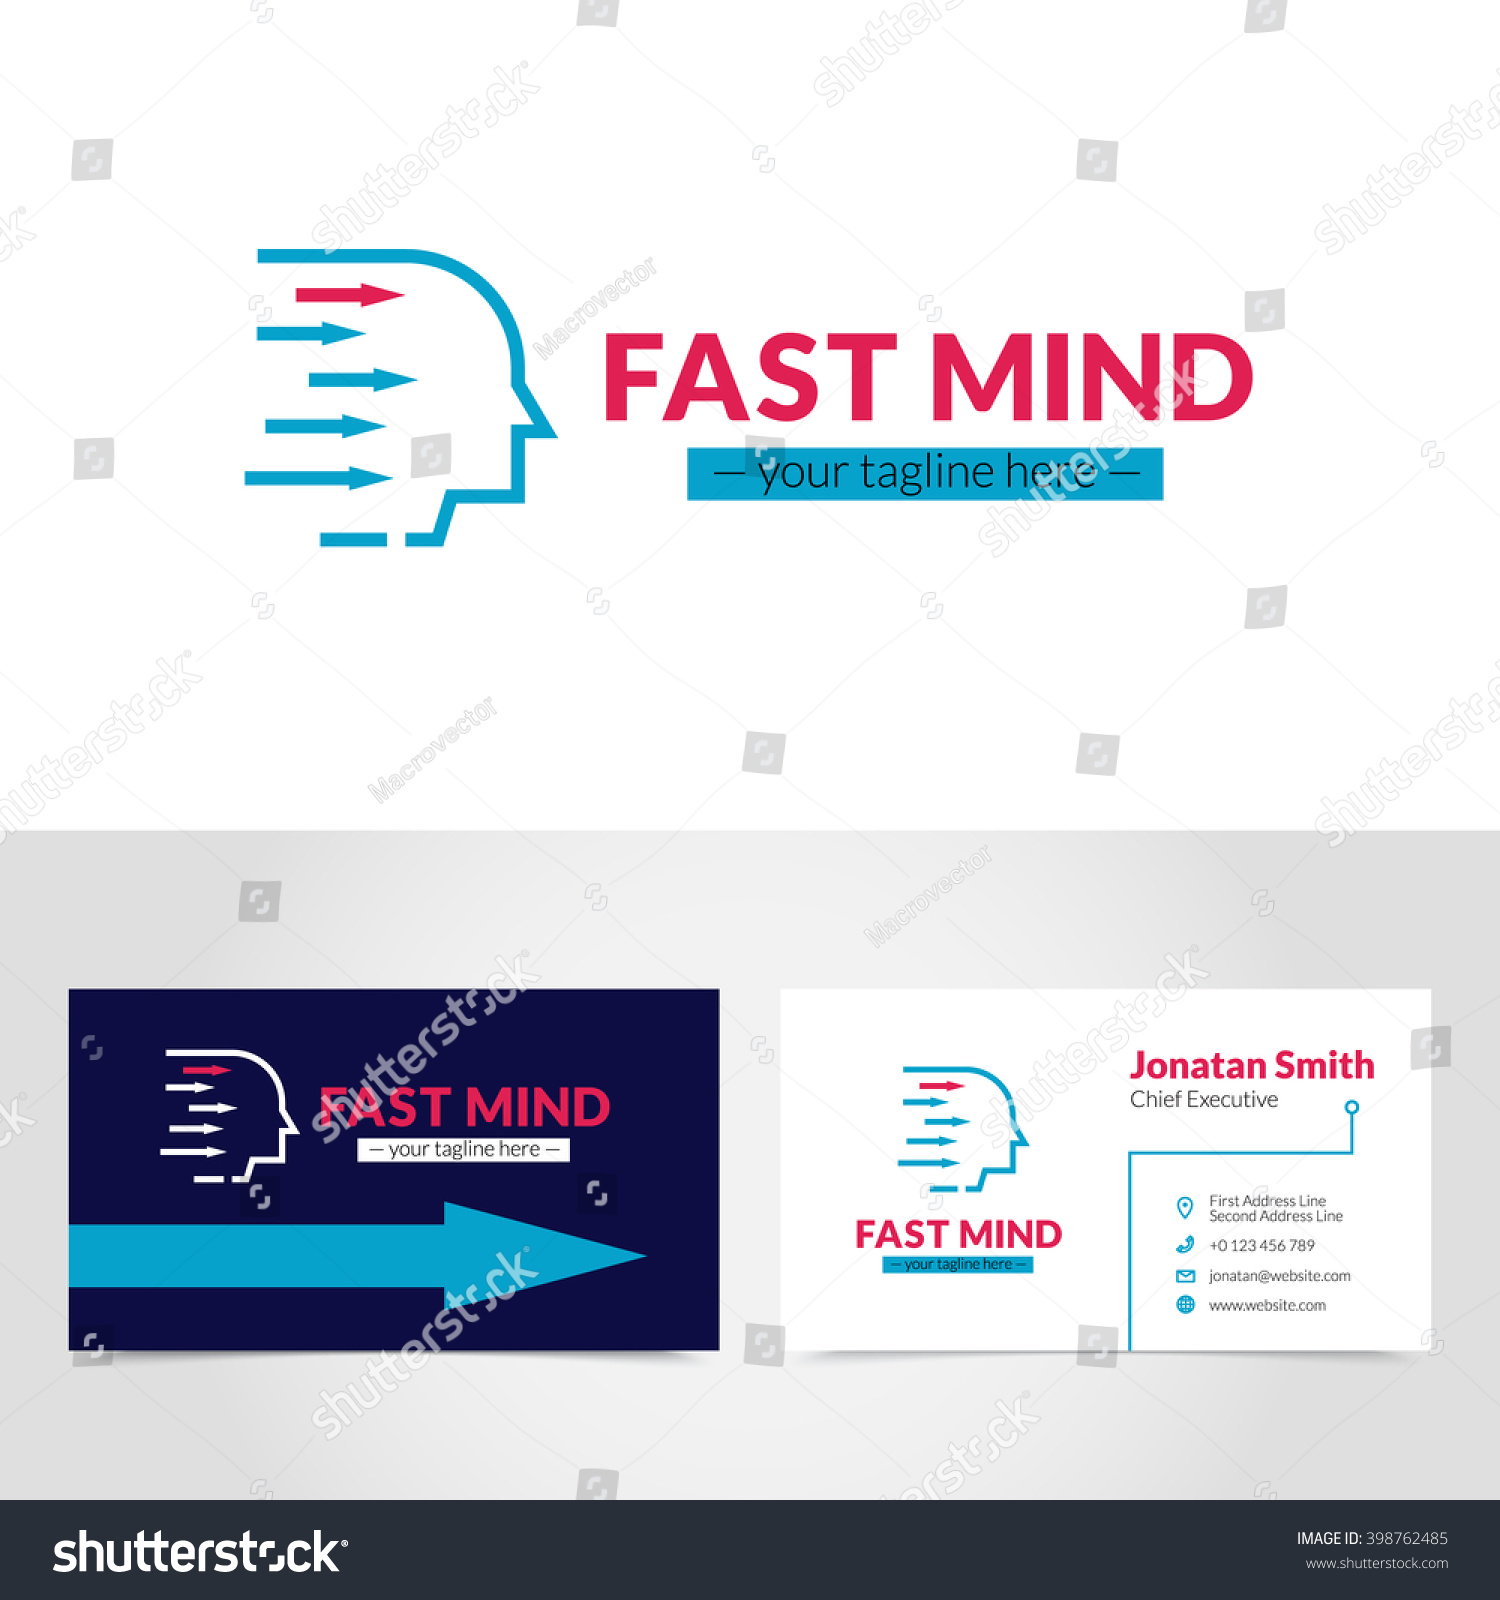 Easy Create Online Personalize Business Card Stock Vector ...